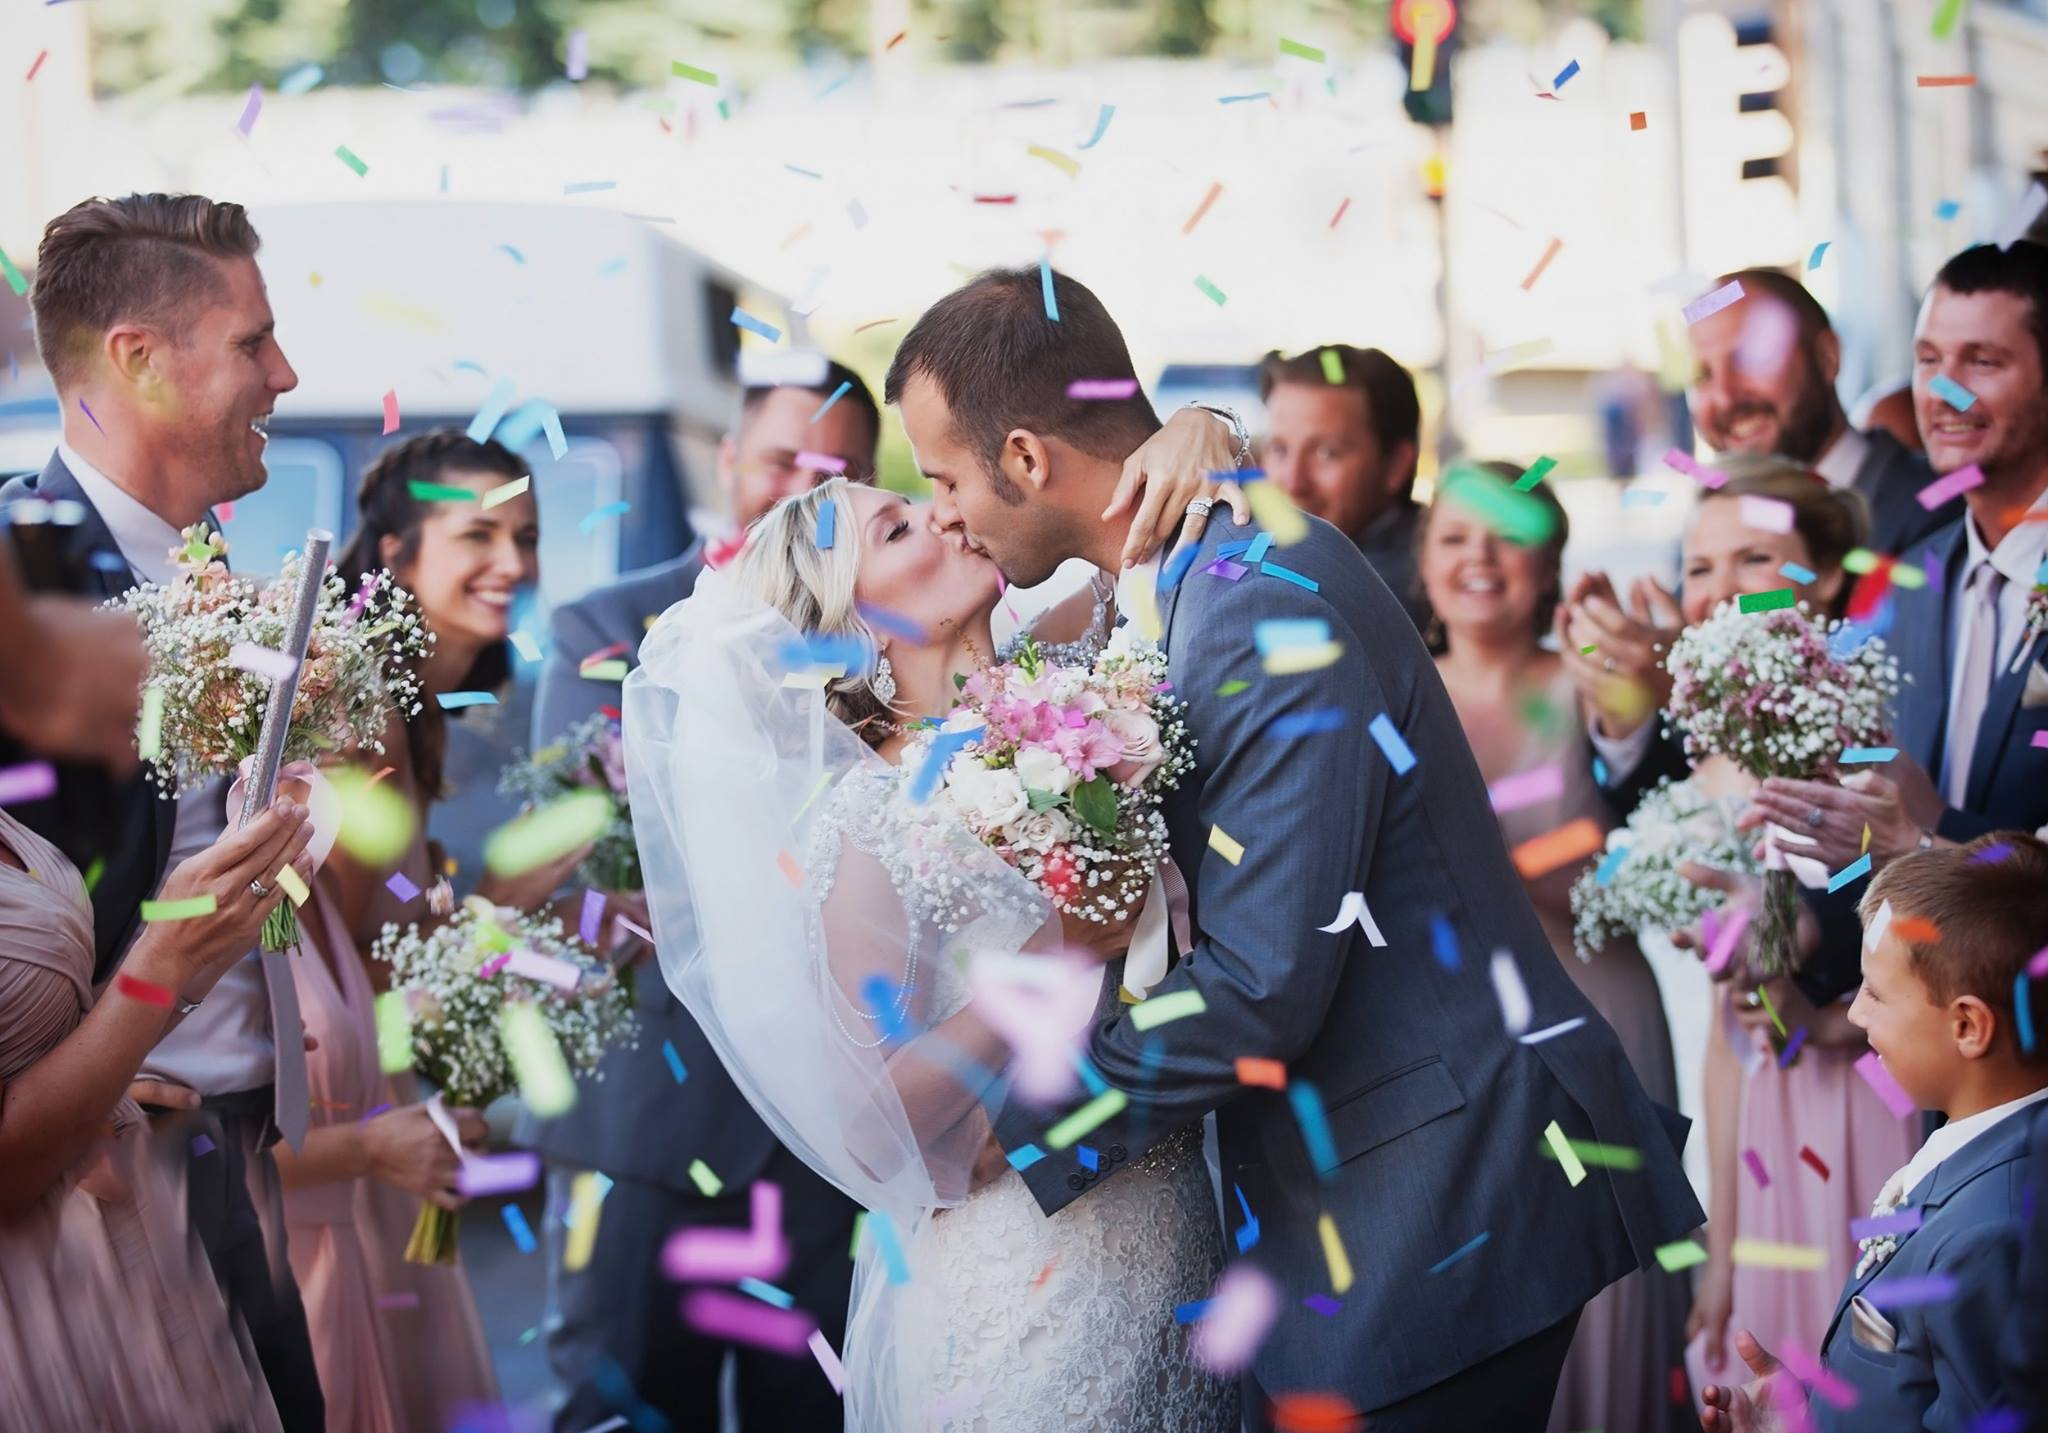 Photo Credit: Alicia & Jared by On3 Design. www.on3weddingphotography.com . Lyndsey & Al - we love you!